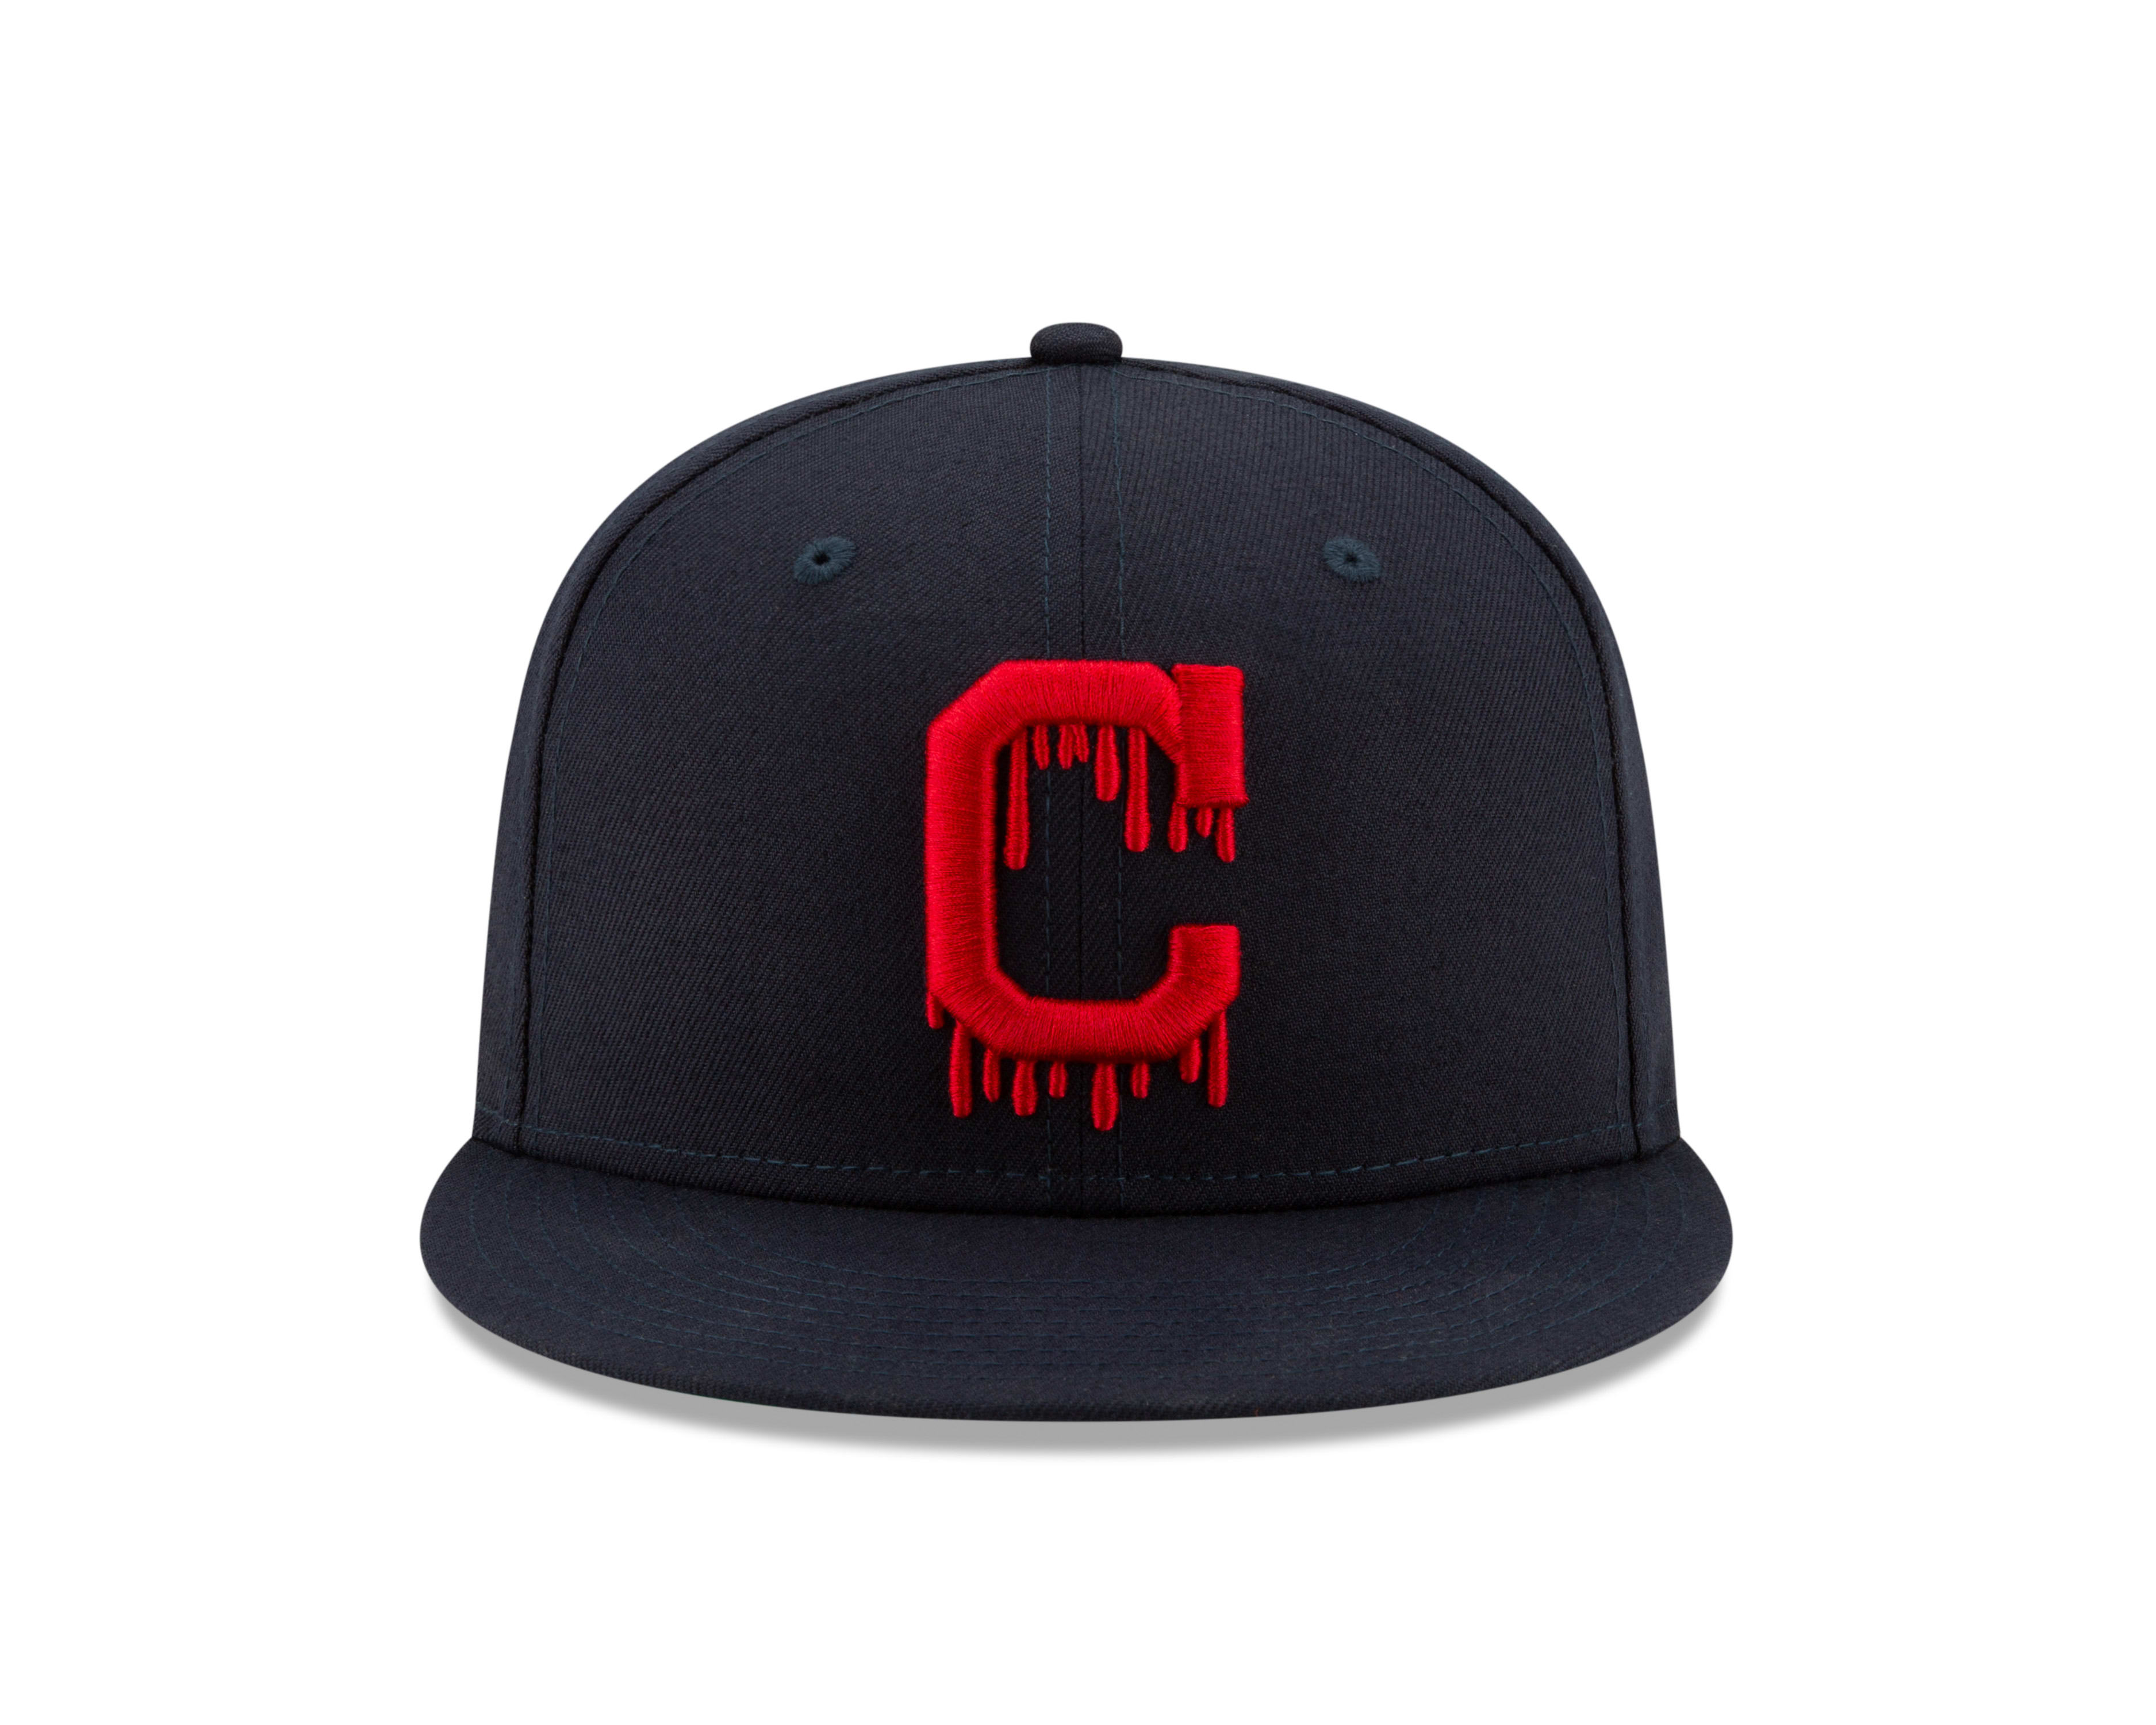 3422df37b3359c Kid Cudi Partners With New Era for Limited Edition 2019 MLB All-Star ...